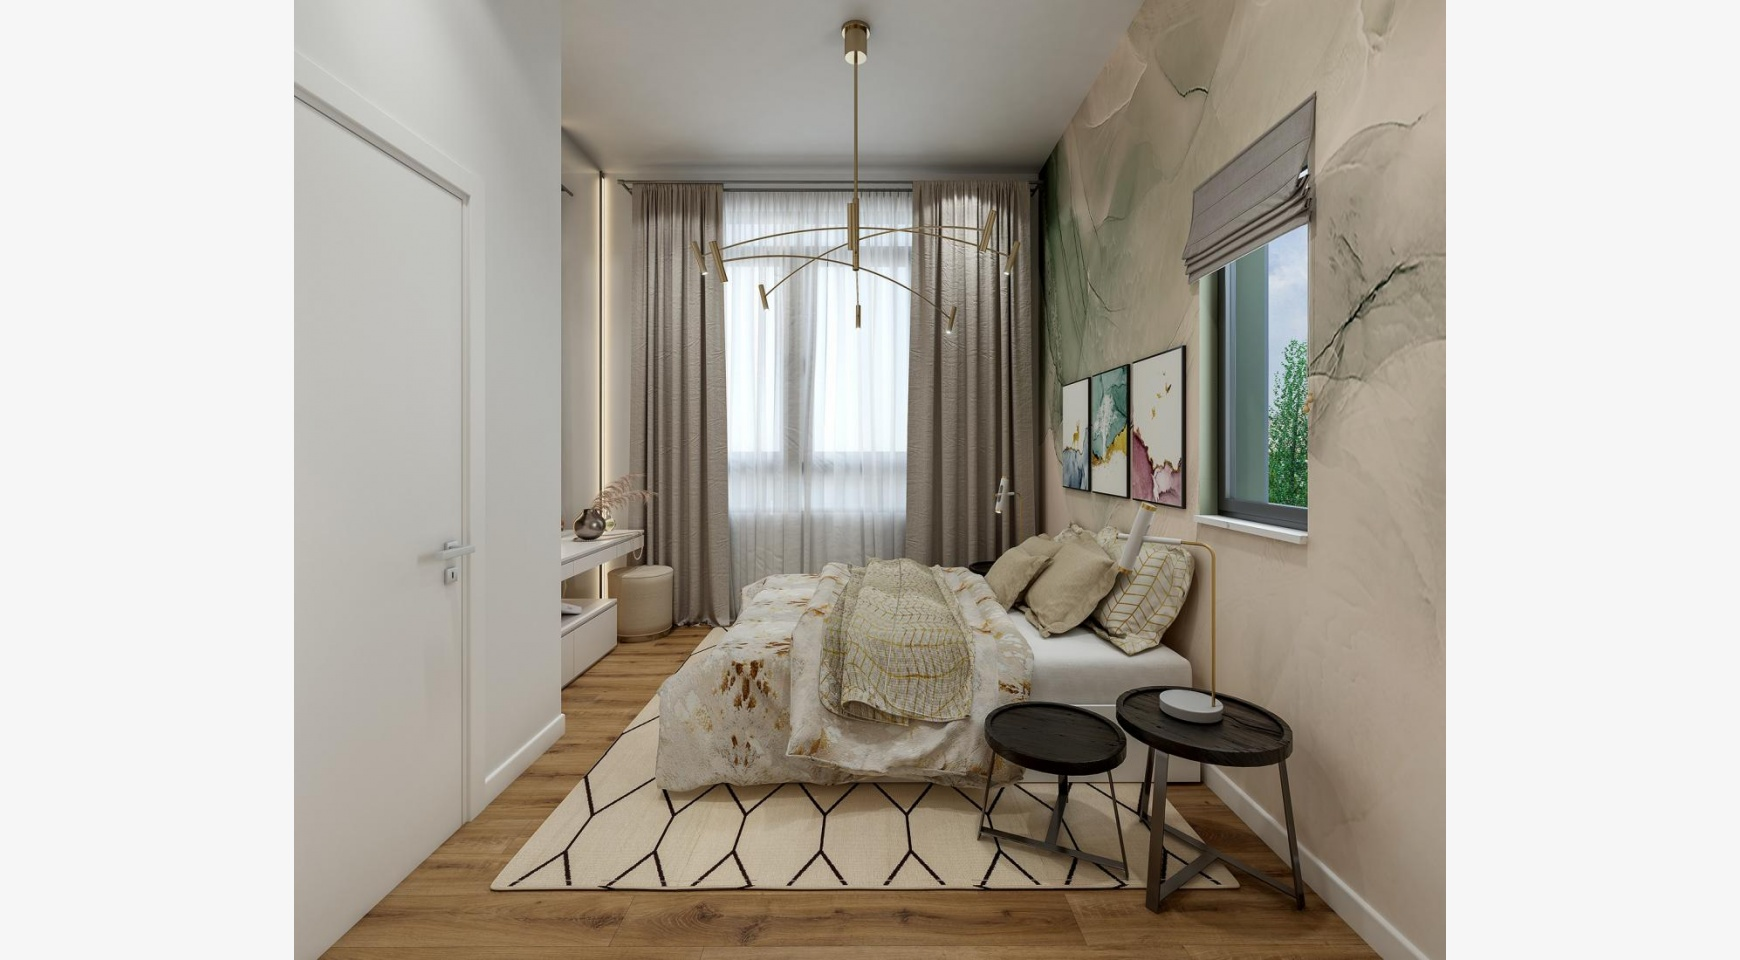 Urban City Residences, Block B. New Spacious 2 Bedroom Apartment 202 in the City Centre - 8